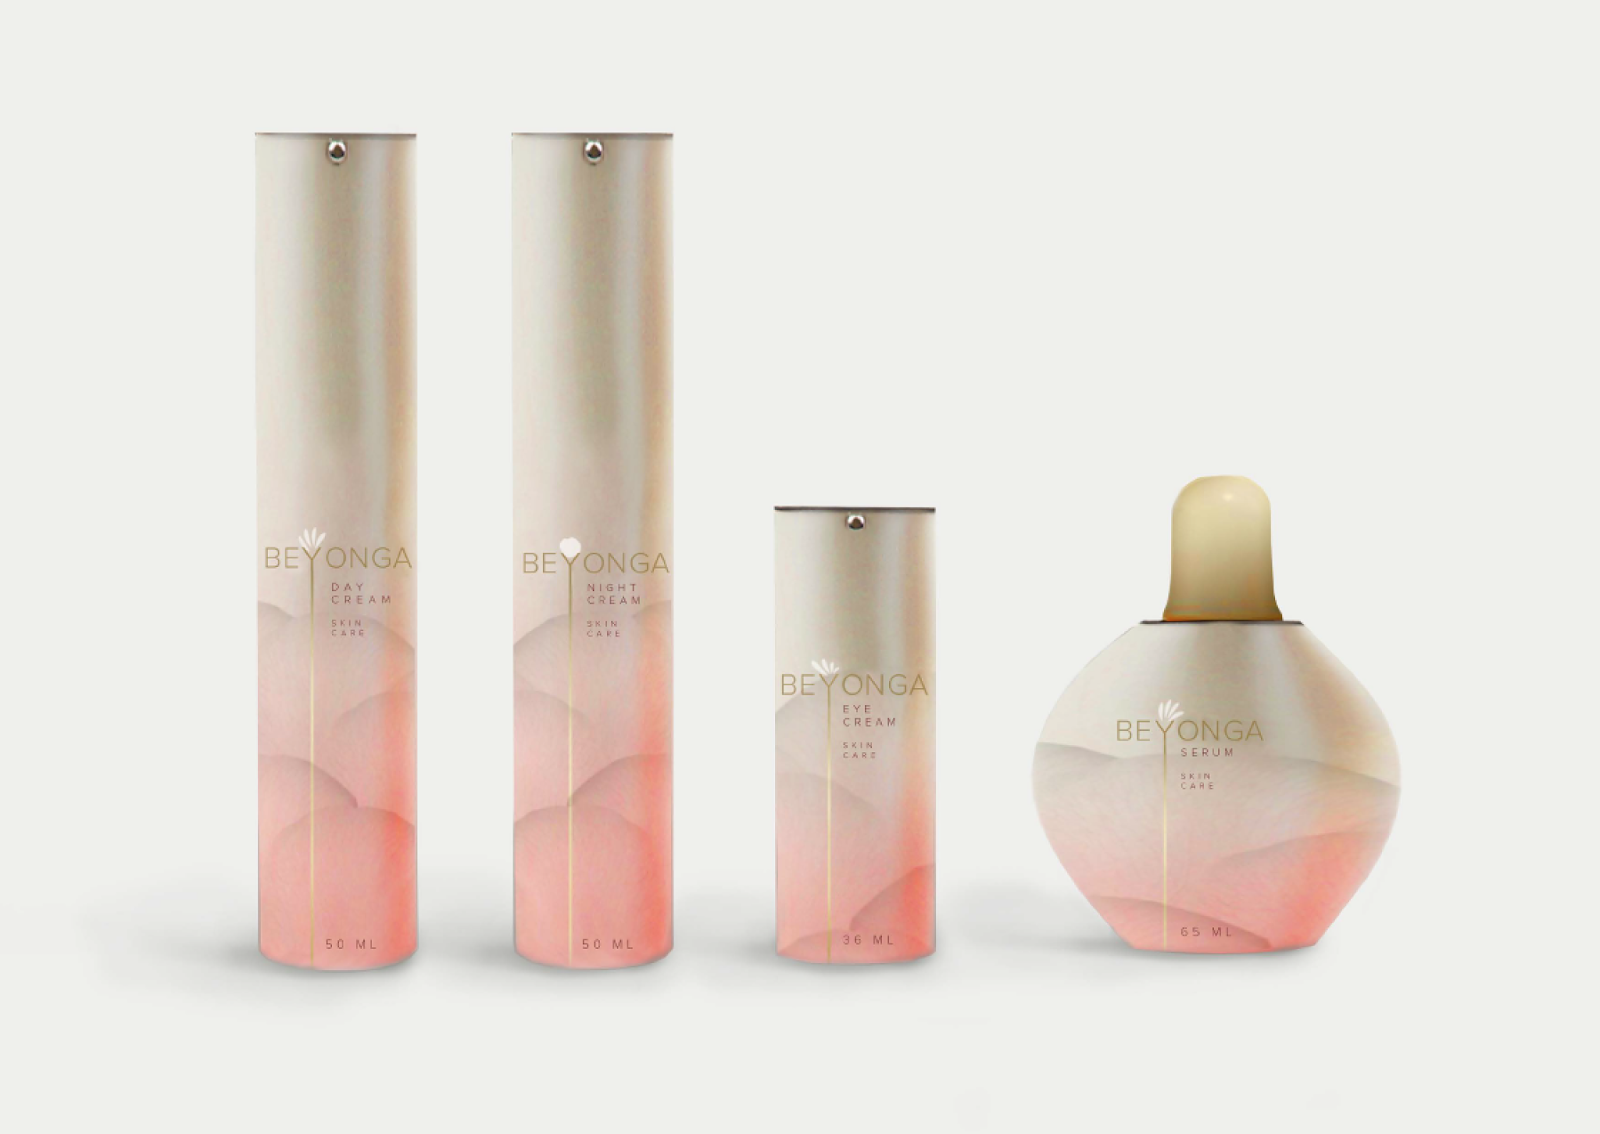 Beyonga Skin Care Student Project On Packaging Of The